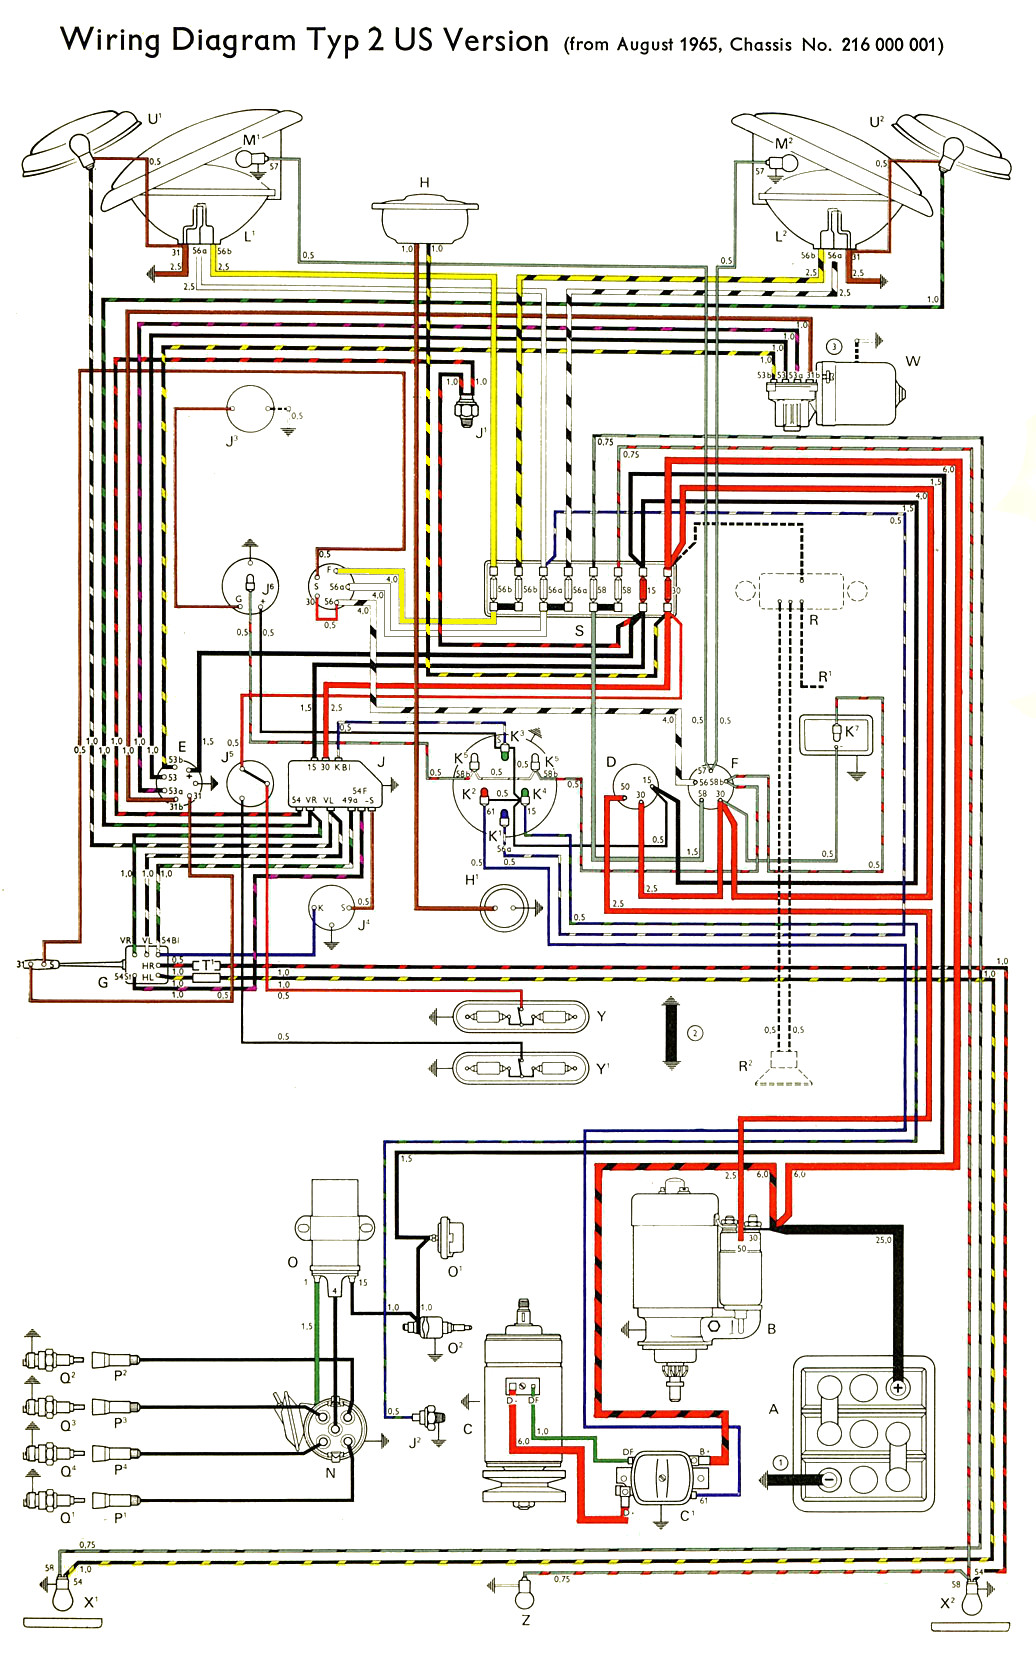 bus_66_USA thesamba com type 2 wiring diagrams Basic Electrical Wiring Diagrams at edmiracle.co